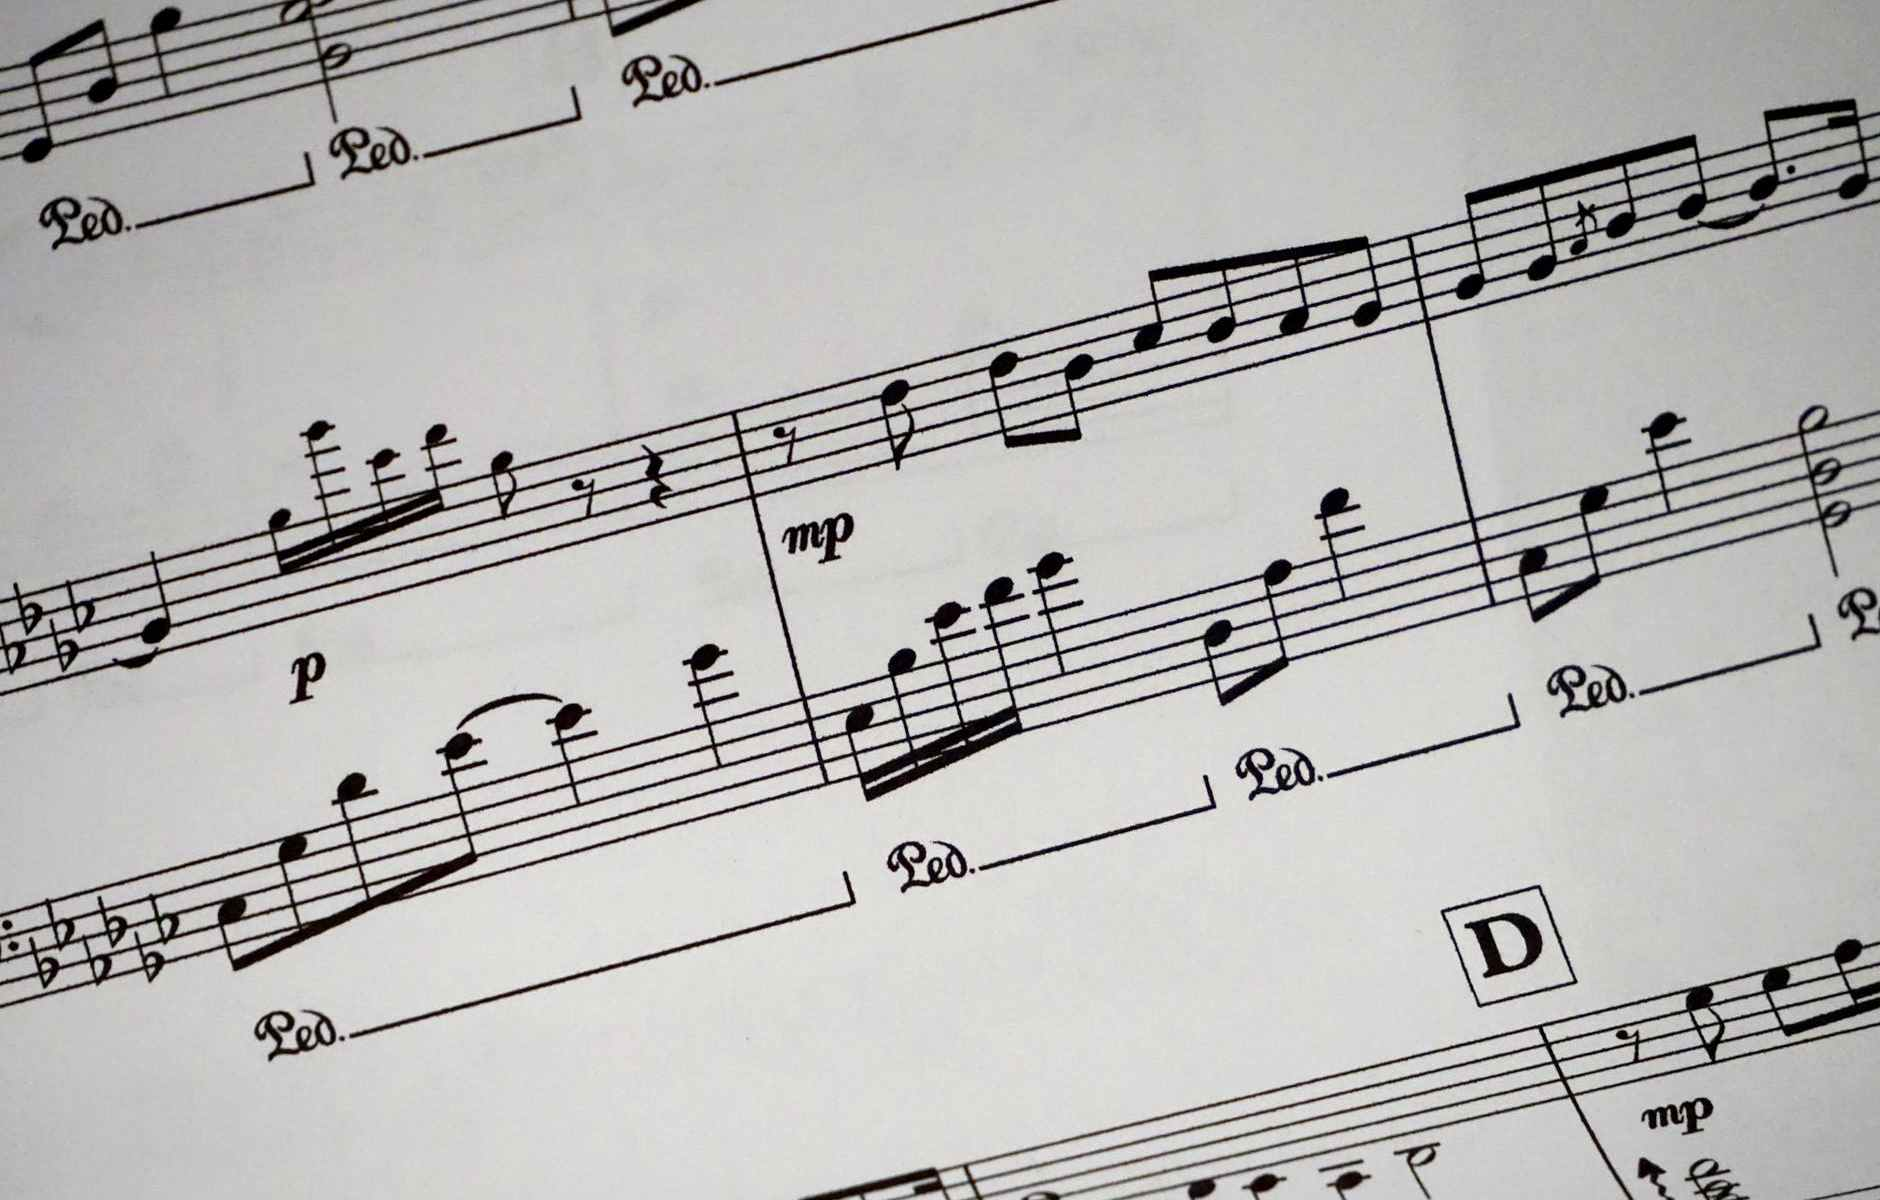 music sheet showing musical notes